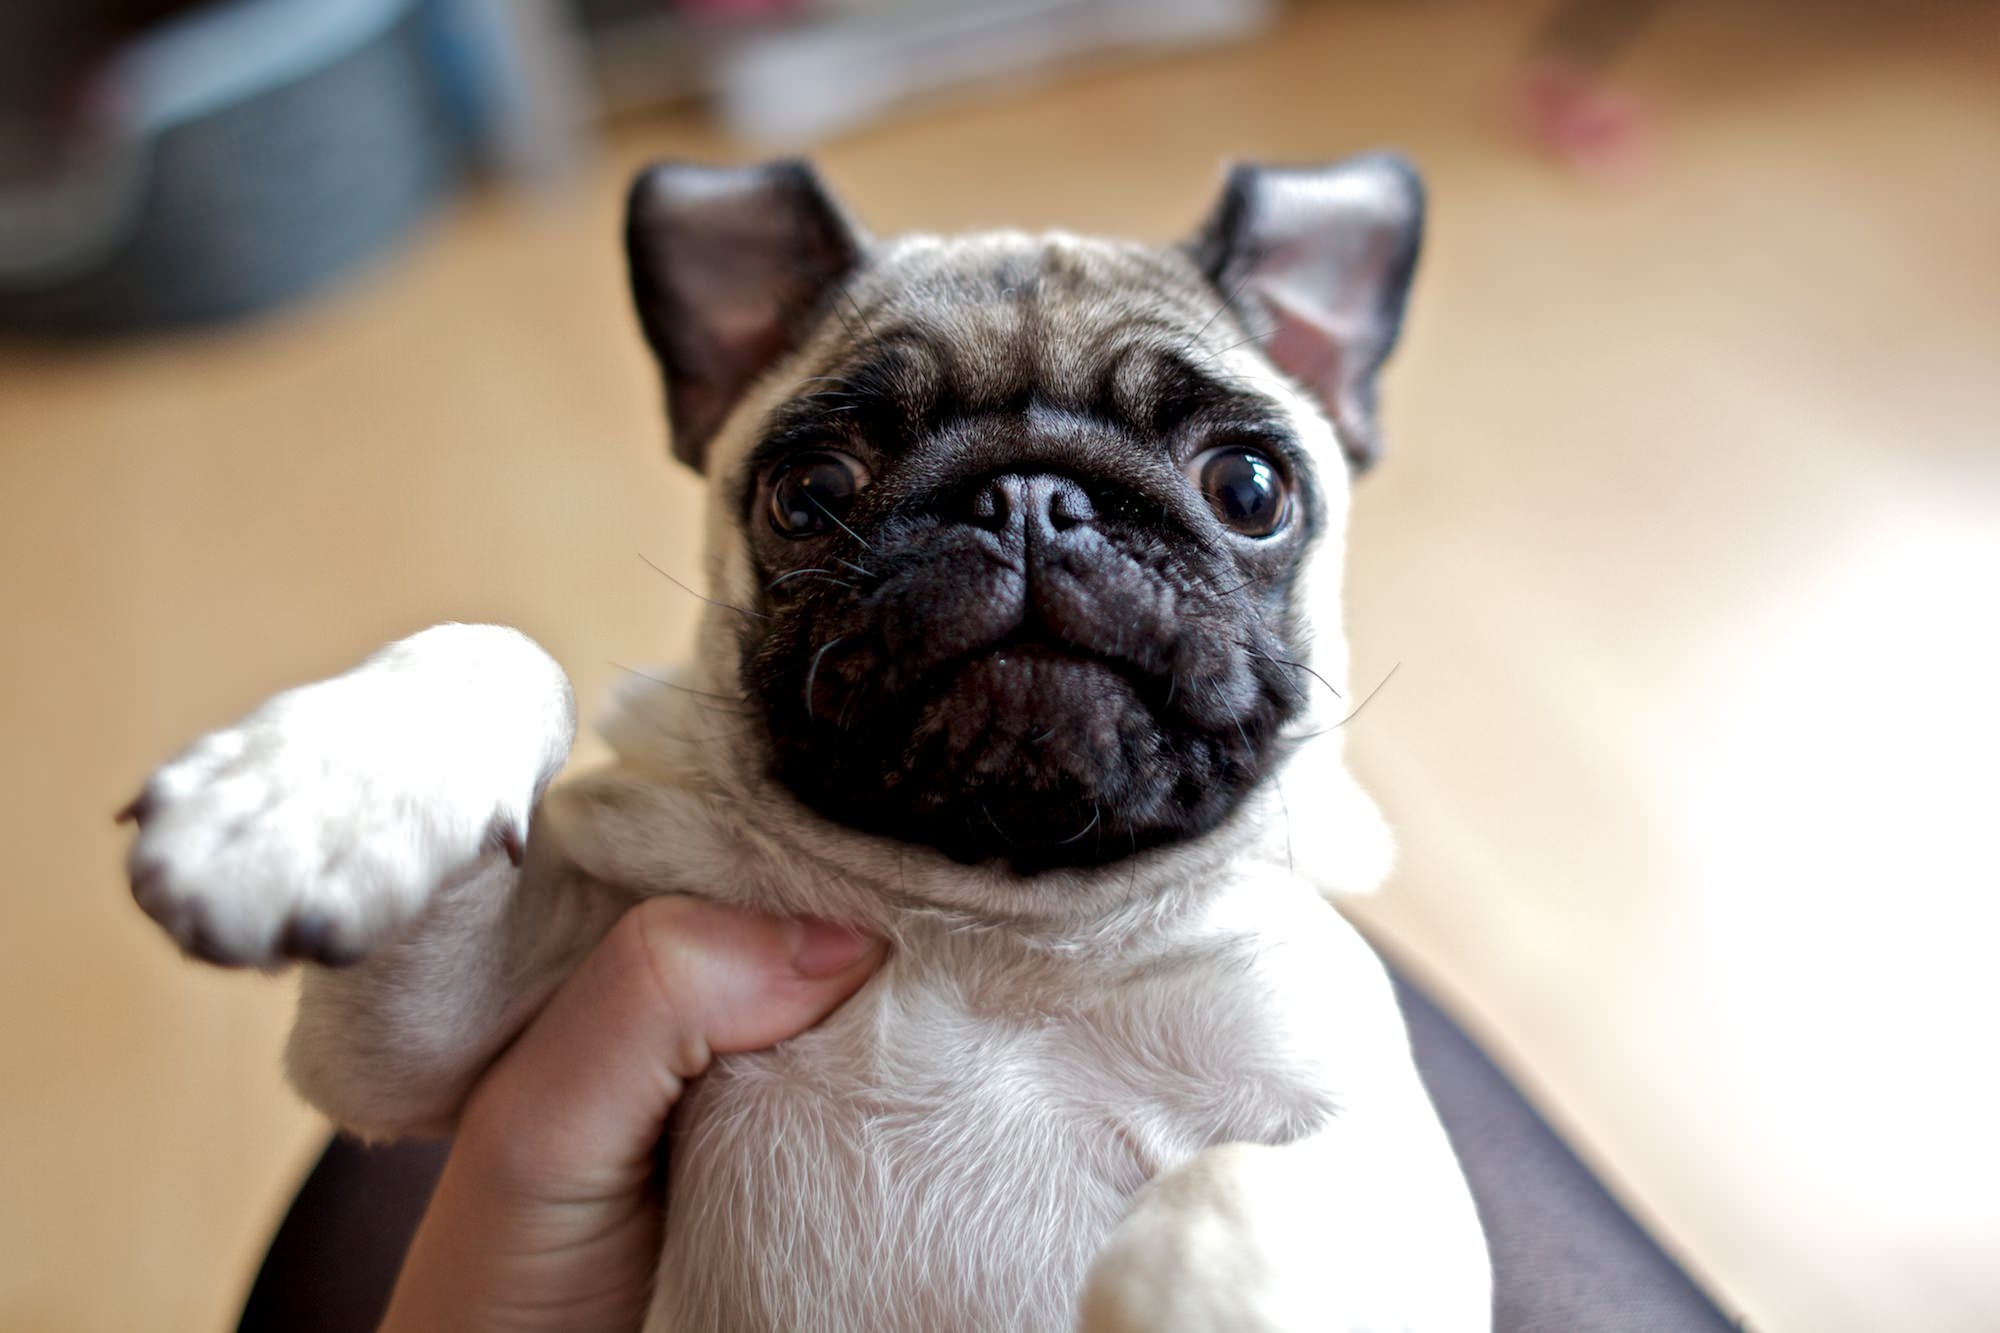 an image of a pug puppy set transcoded and delivered at a compression level of 60 out of 100